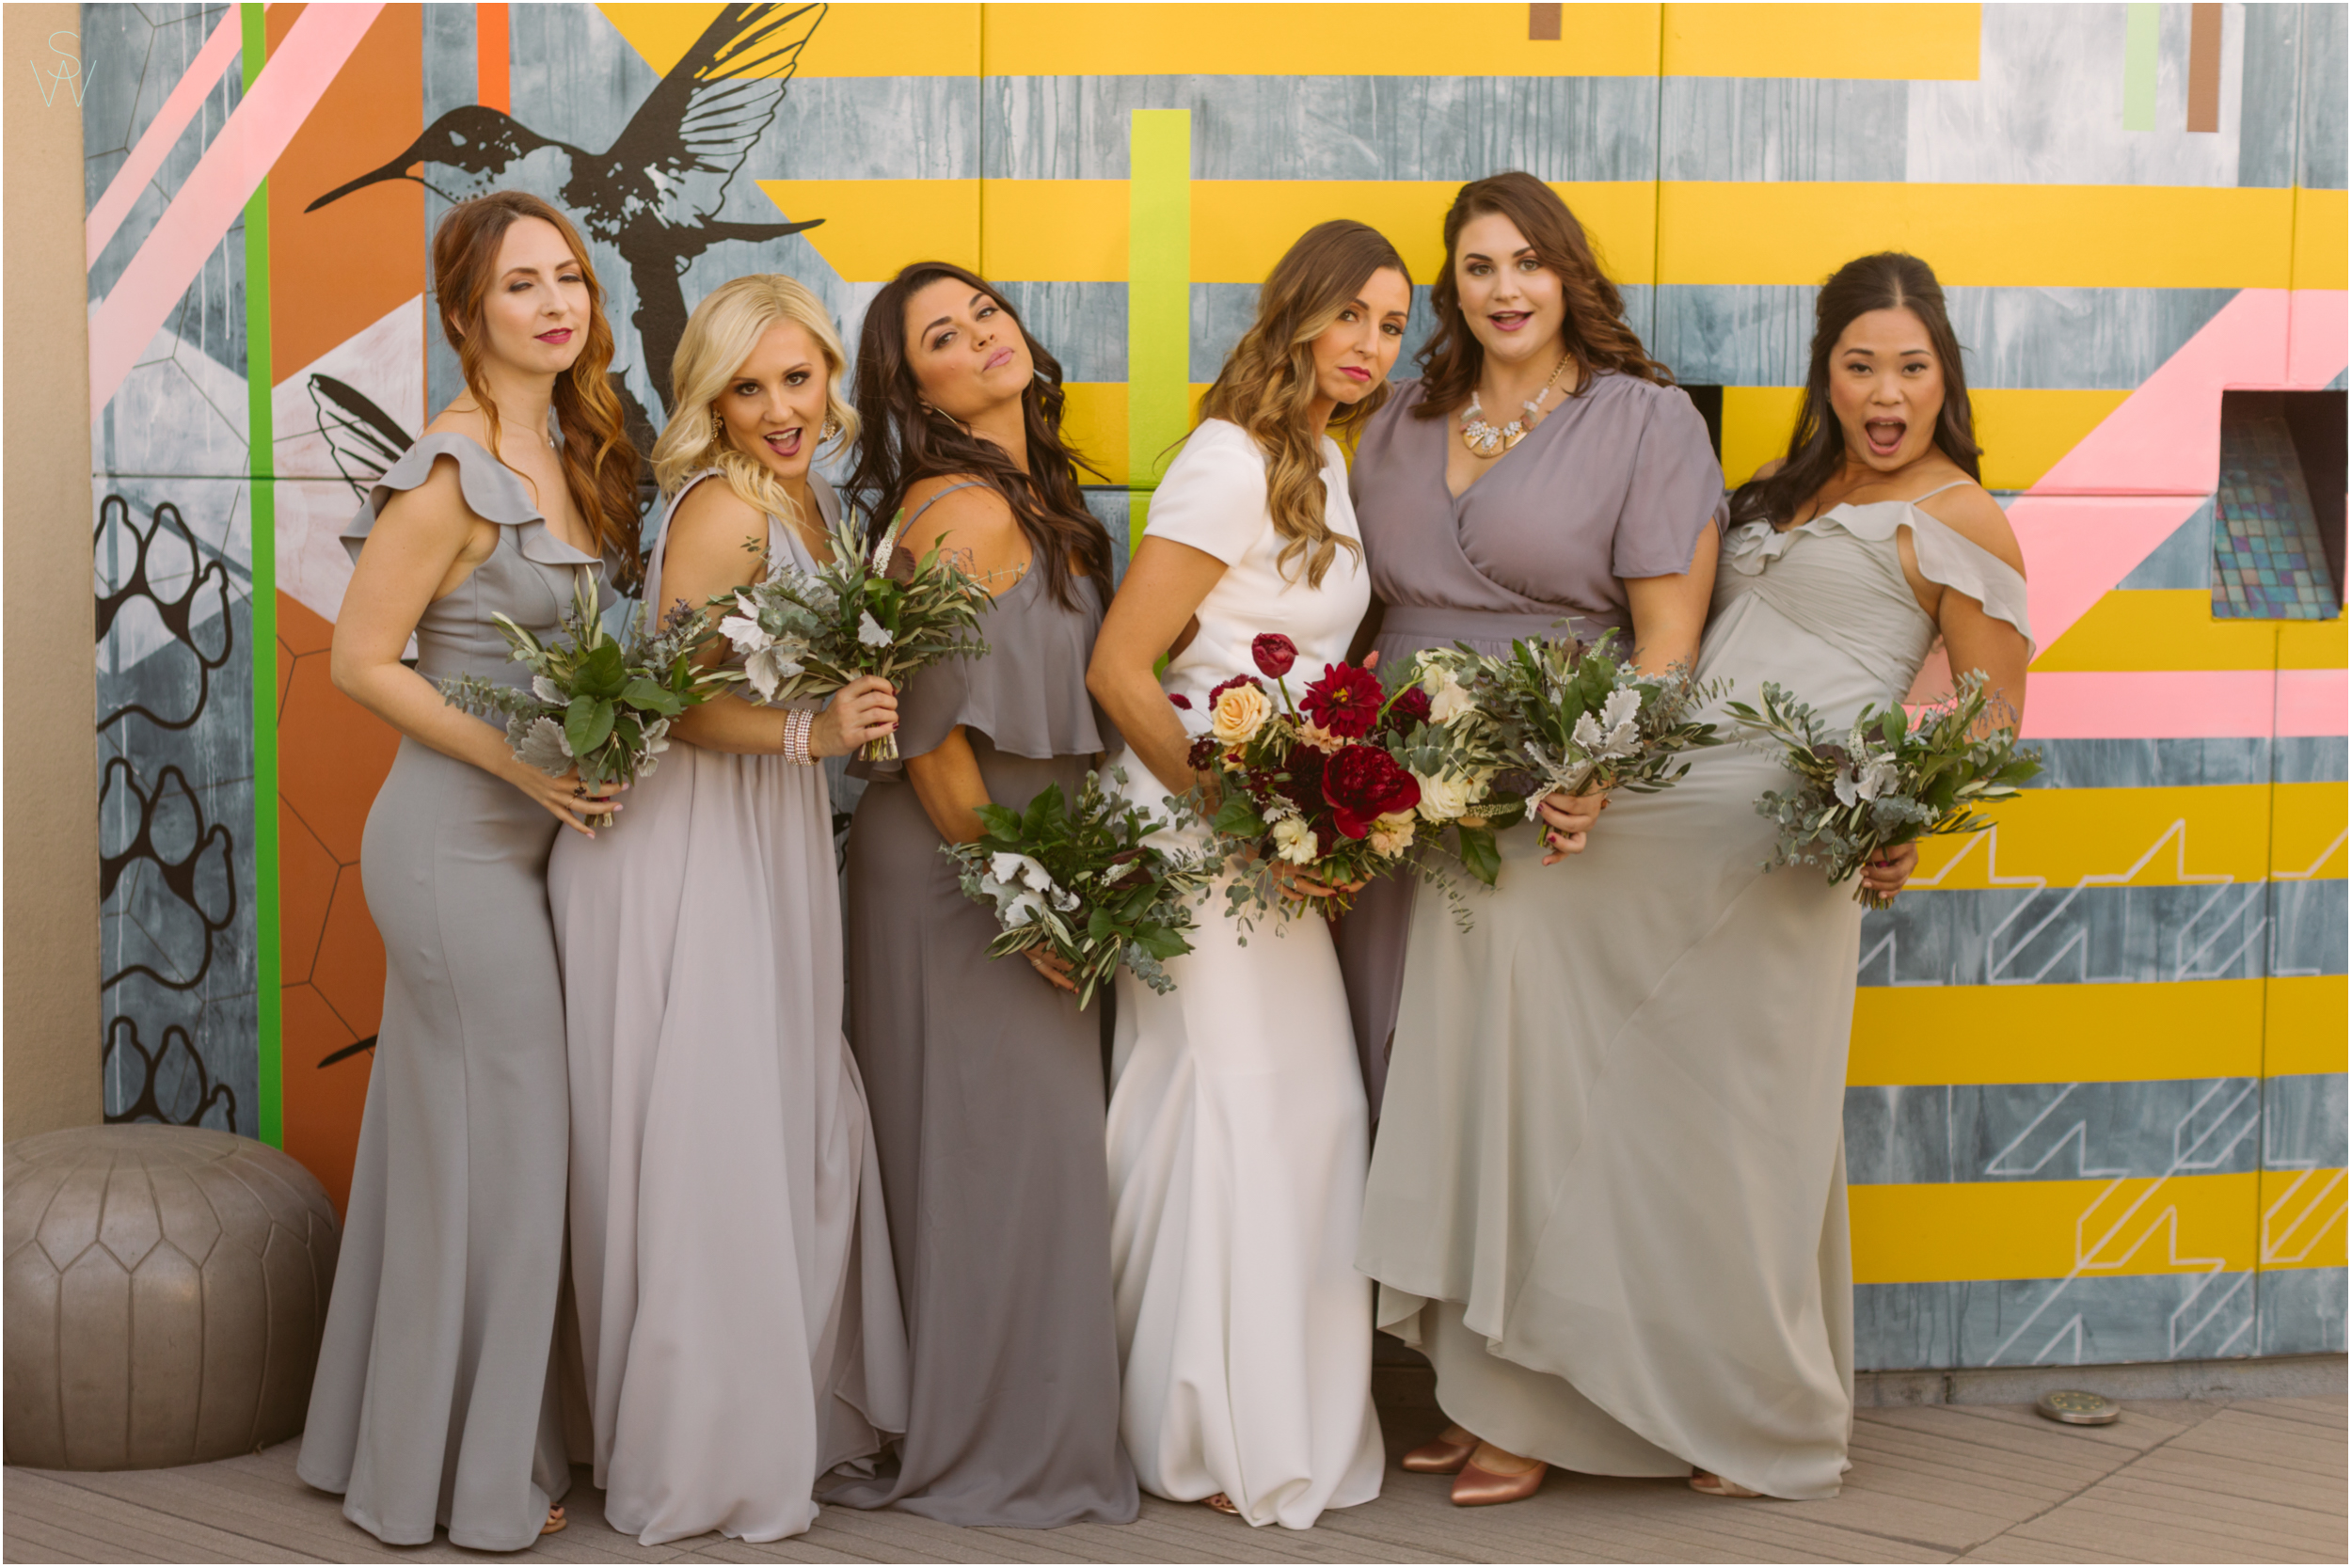 126THE.UNDERGROUND.ELEPHANT.Bridesmaidsfun.wedding.photography.shewanders.JPG